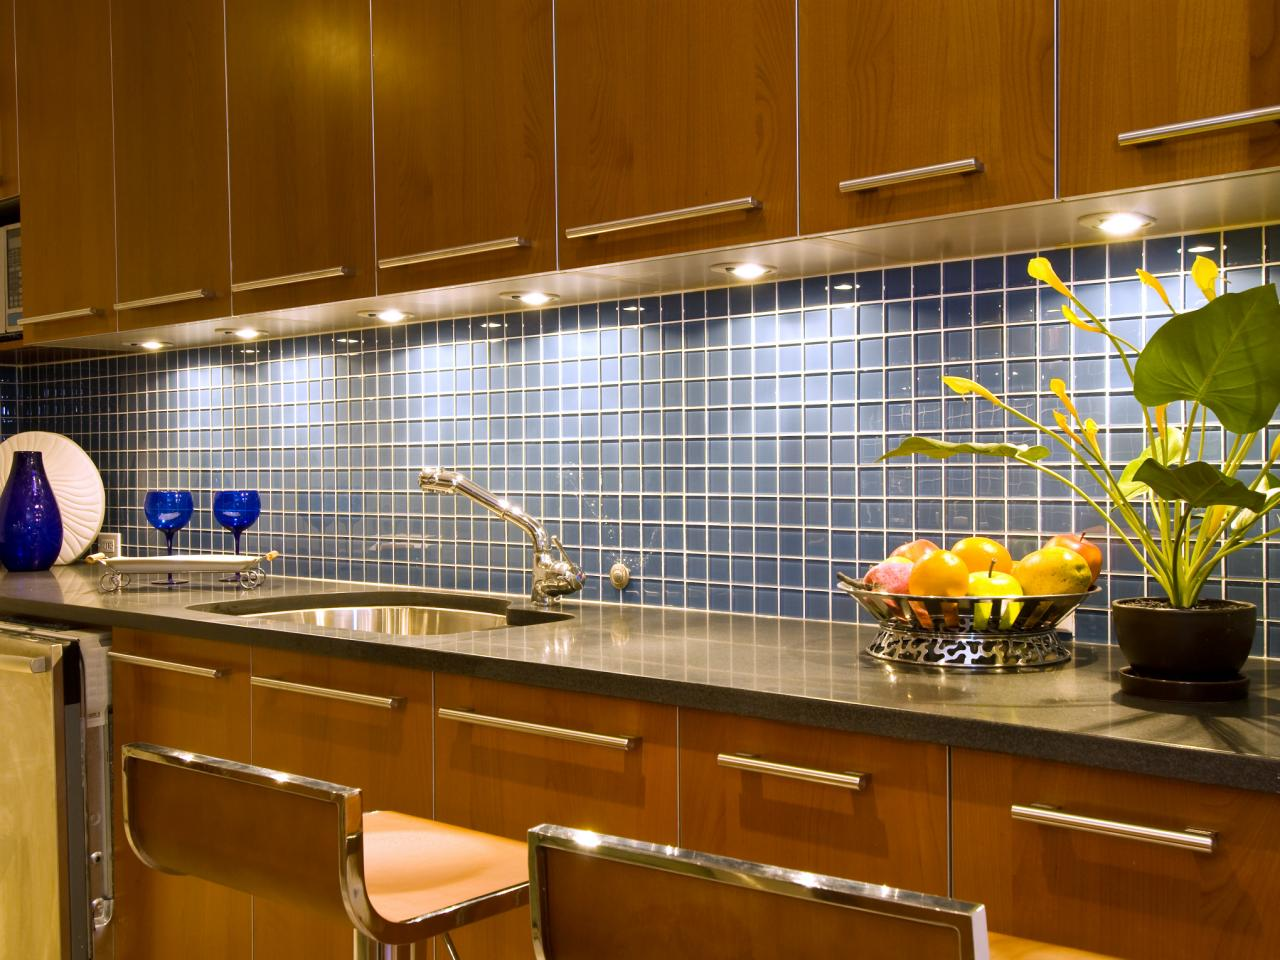 Style Your Kitchen With The Latest In Tile Hgtv Design Of Kitchen Tiles